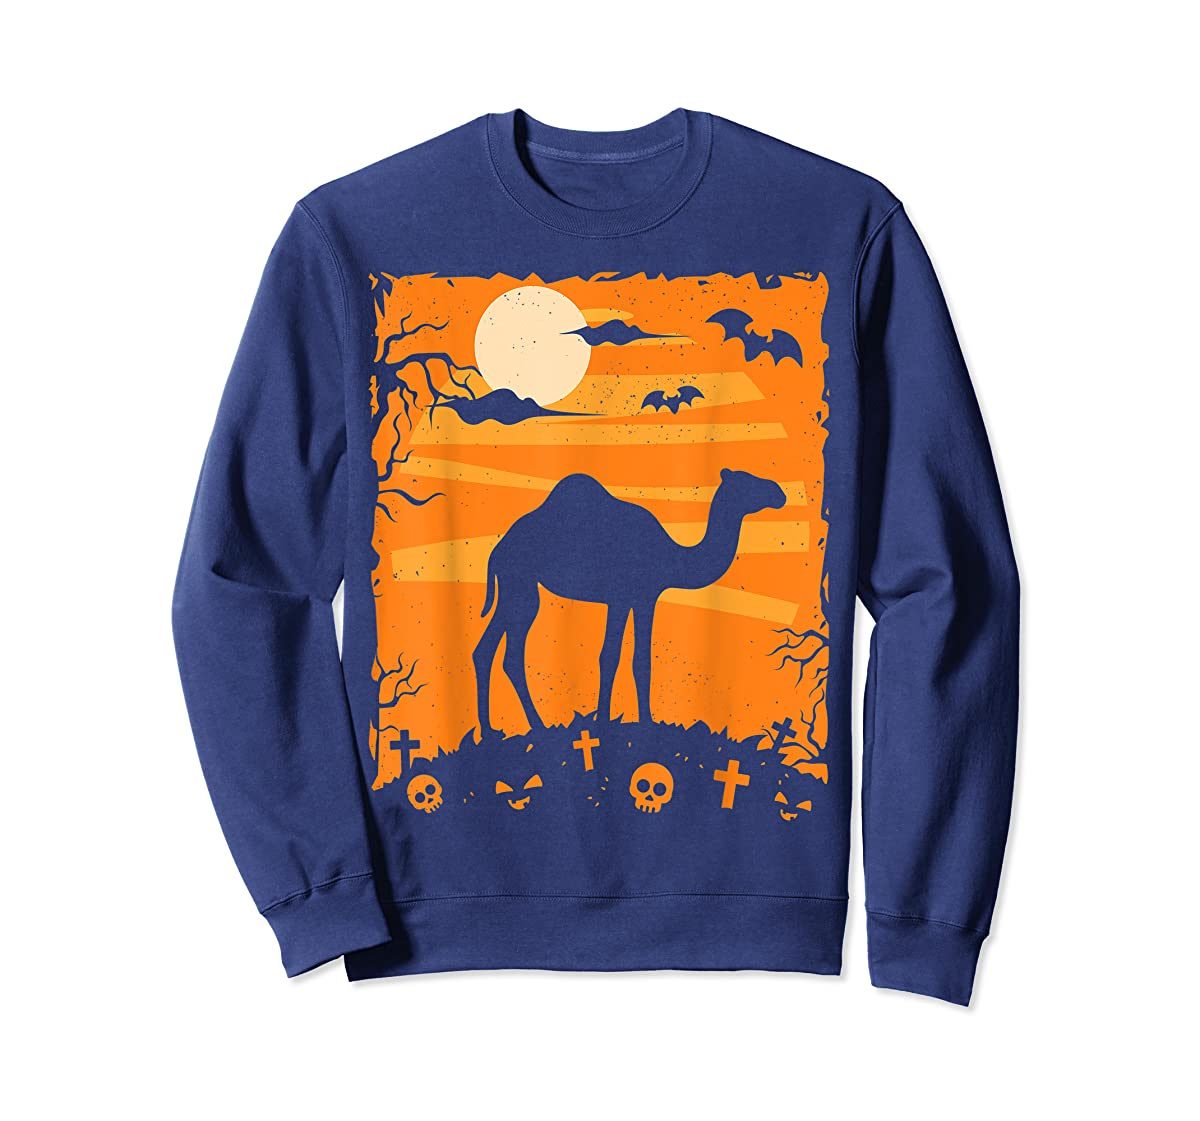 Camel Halloween Costume Animal Funny Pumpkin Outfit Gift T-Shirt-Sweatshirt-Navy